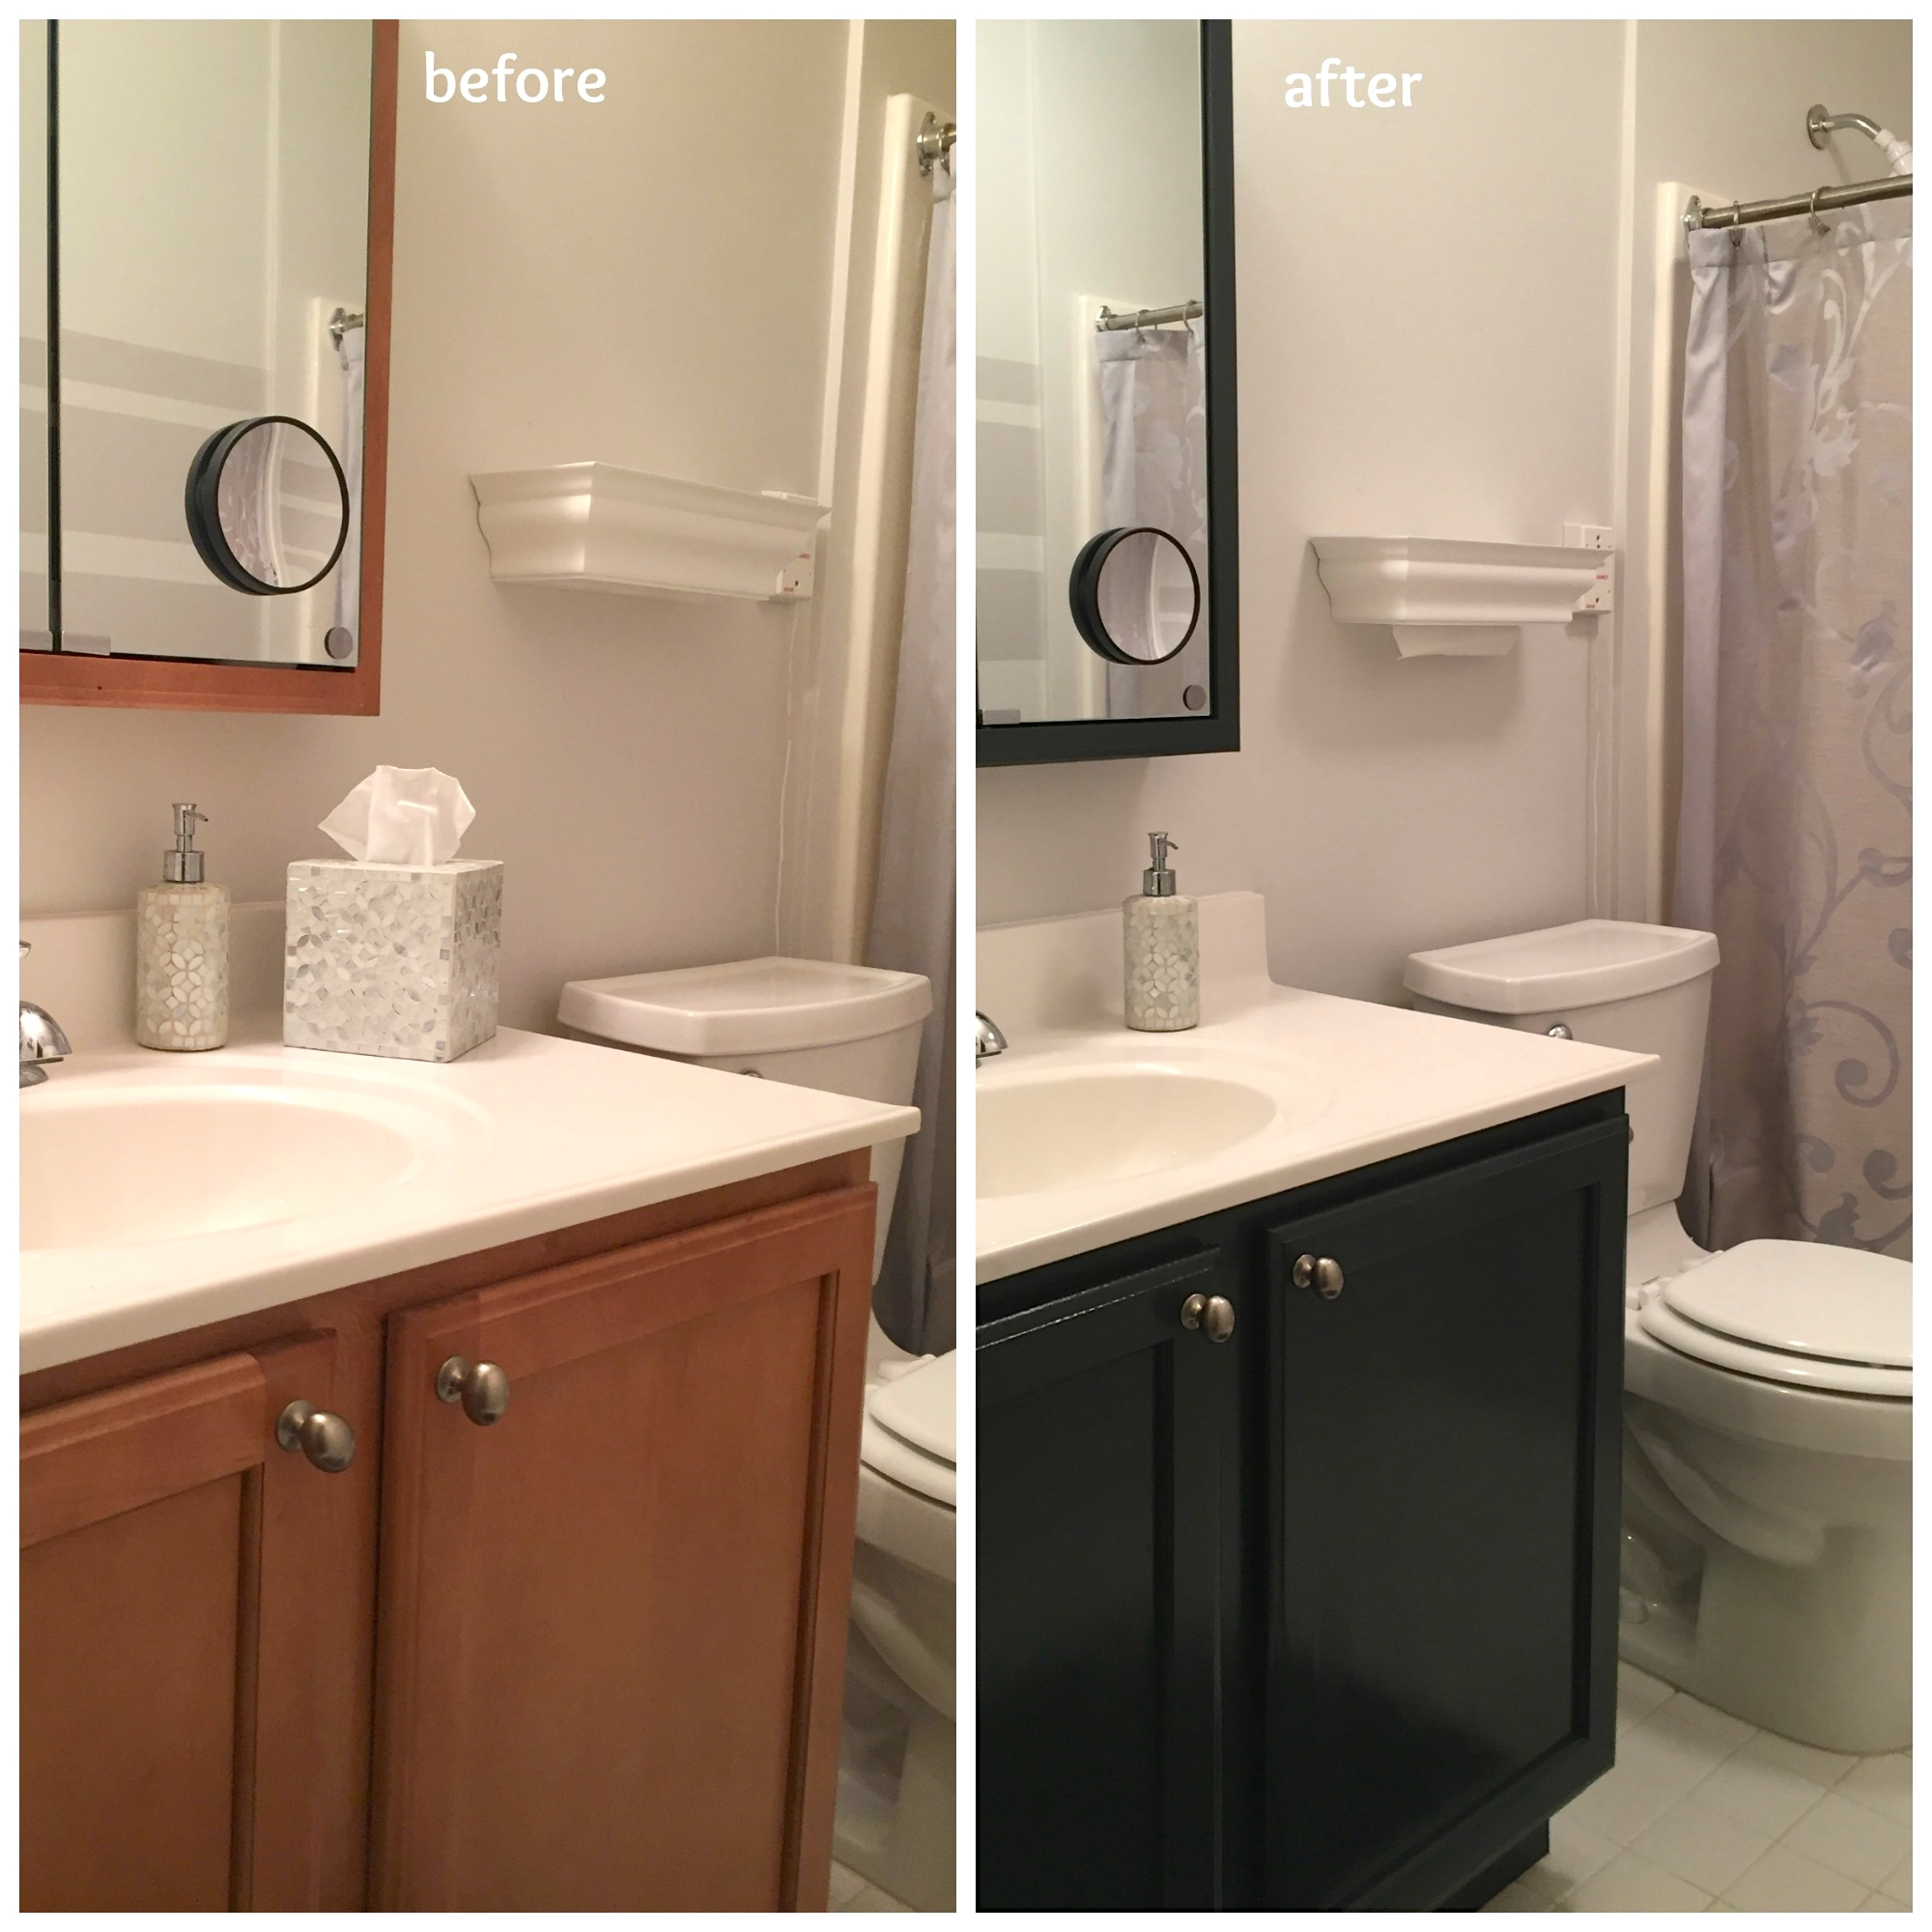 In an afternoon, I updated the color of my mom's bathroom